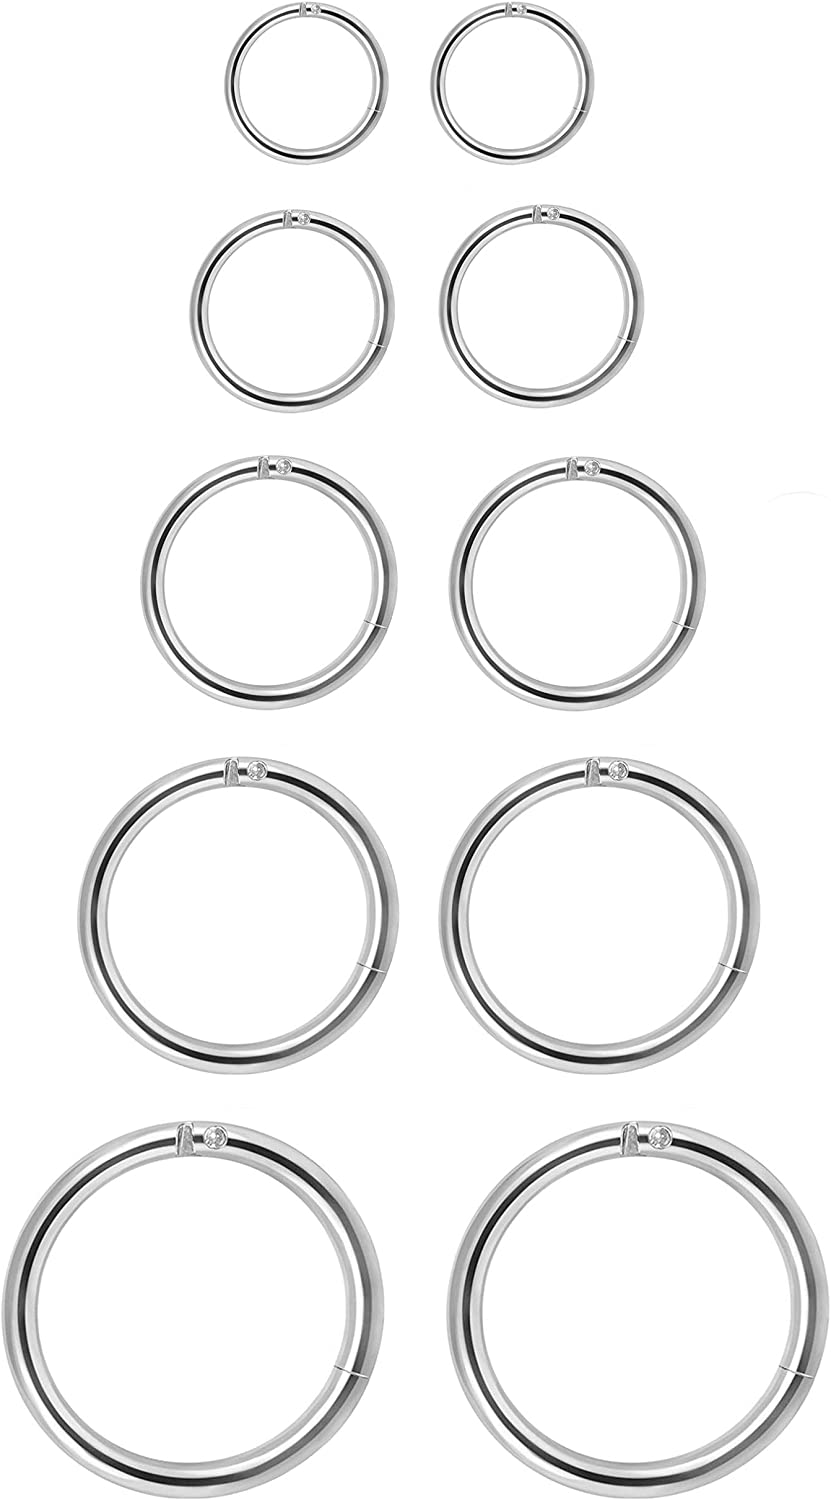 CARSHIER 4-5Pairs 6-14mm Stainless Steel 16g Cartilage Hoop Earrings for Men Women Nose Ring Helix Septum Couch Daith Lip Tragus Piercing Jewelry Set